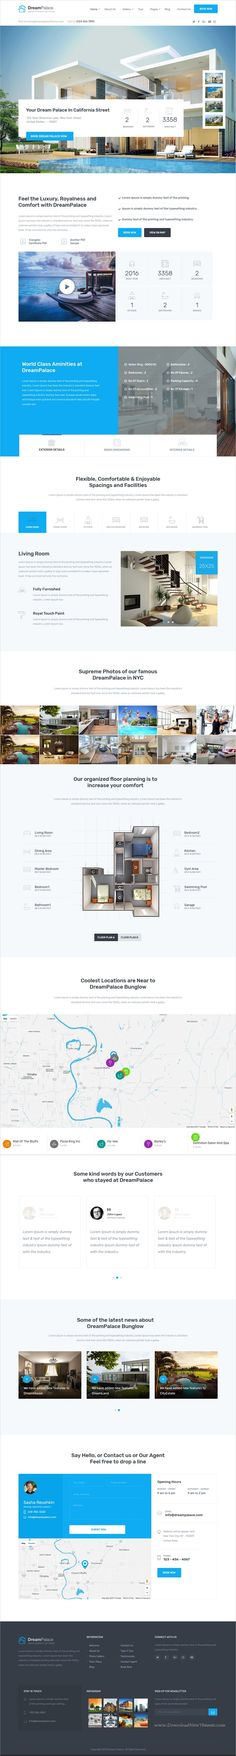 DreamPlace is a modern and trendy design 4in1 #WordPress theme for single #property real estate, renting or #selling villa and #apartments websites download now➩  https://themeforest.net/item/dreampalace-single-property-real-estate-theme/19193885?ref=Datasata